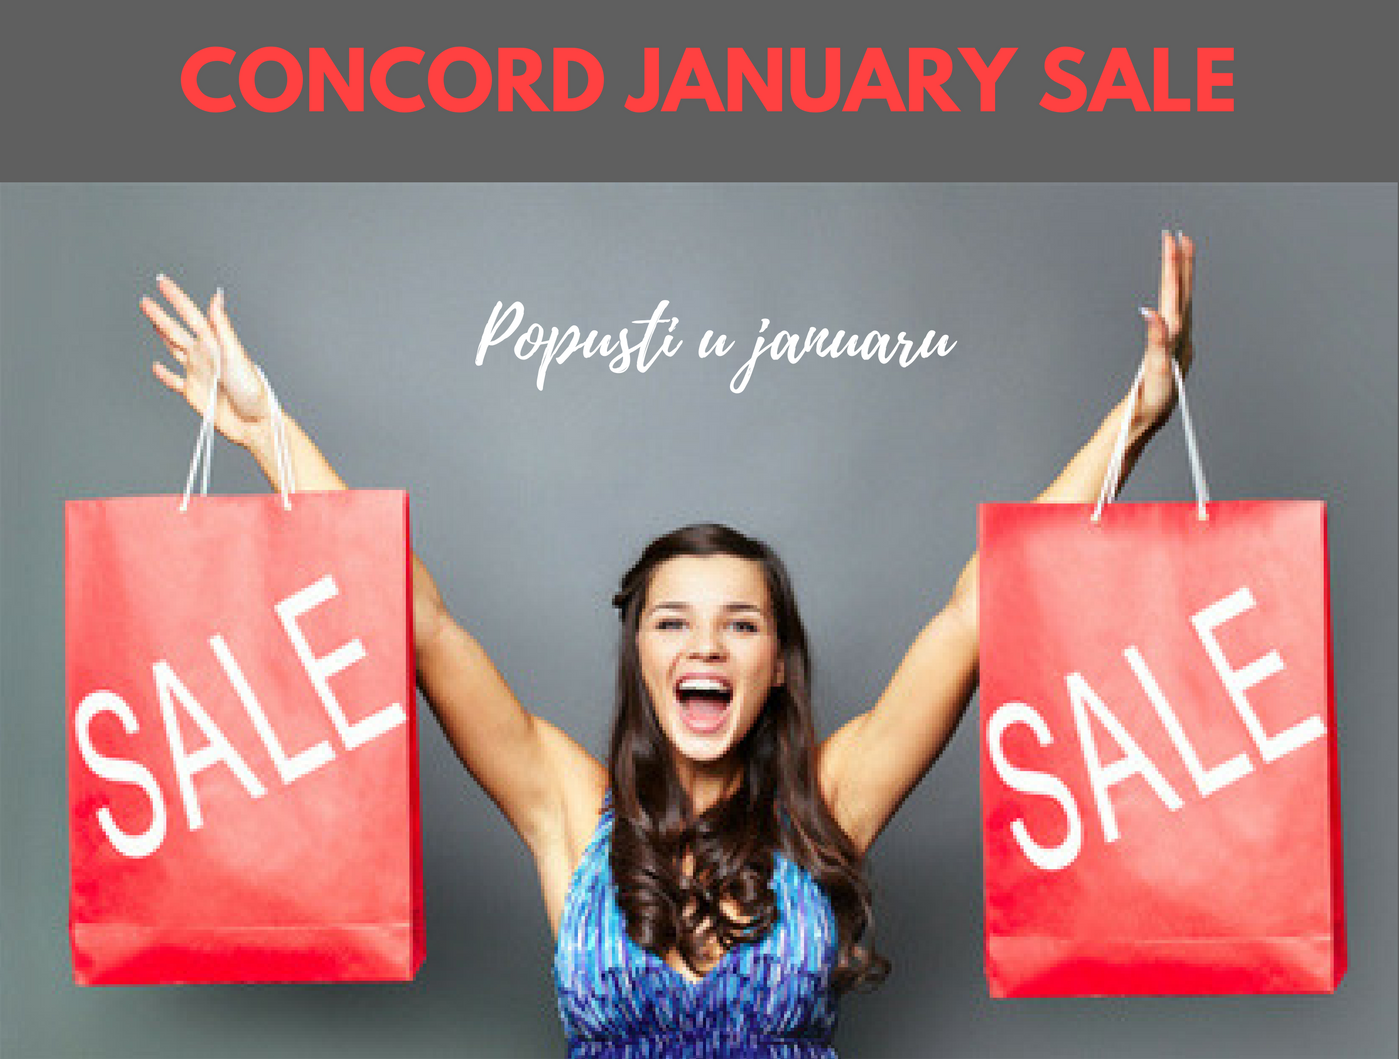 concord january sale 370x280